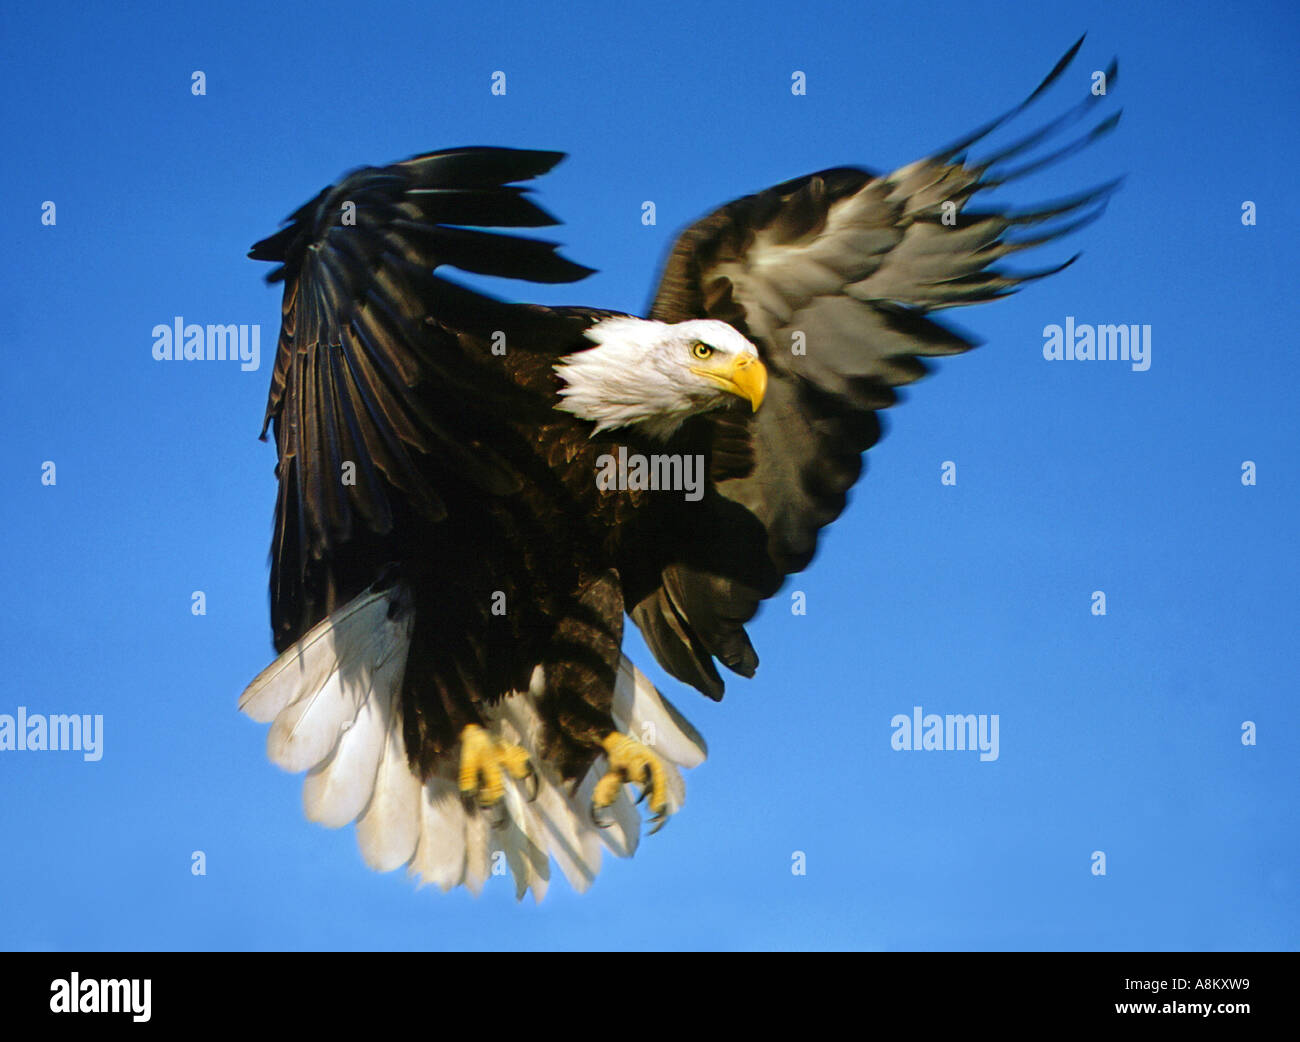 usa idaho american bald eagle landing with tallons out in birds of